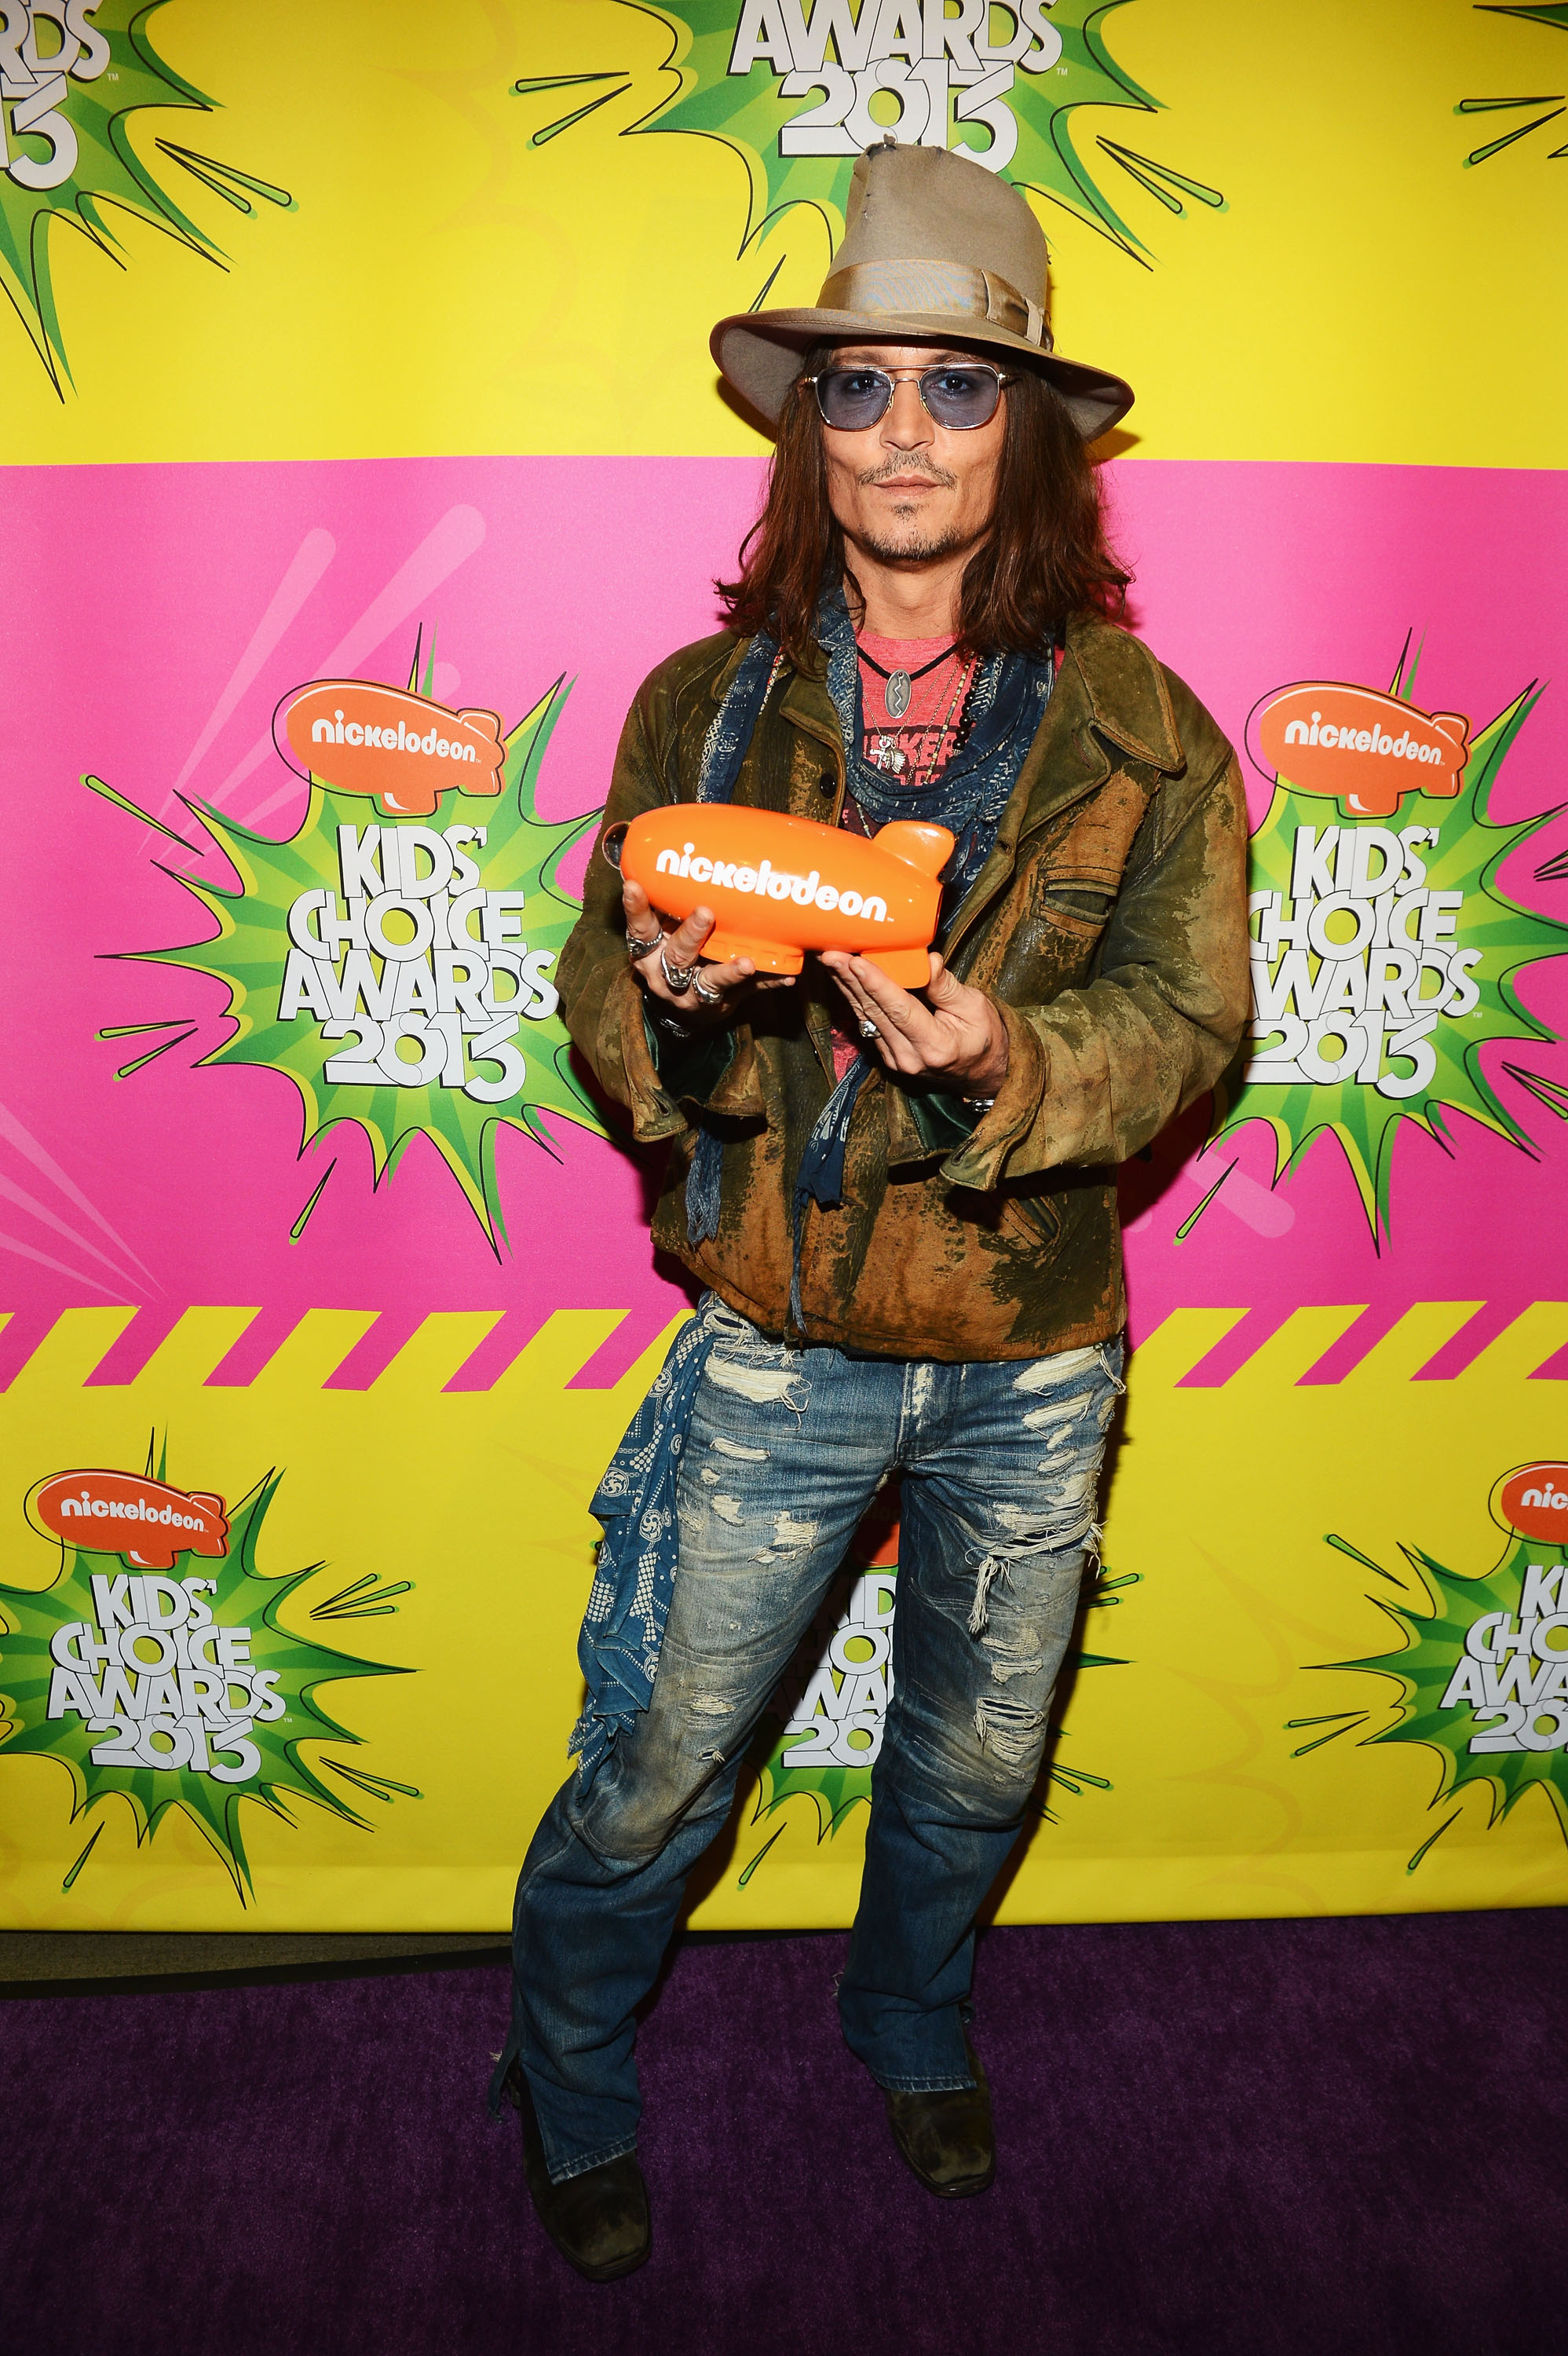 Johnny Depp showed off his Nichelodeon honor backstage at the Kids' Choice Awards.